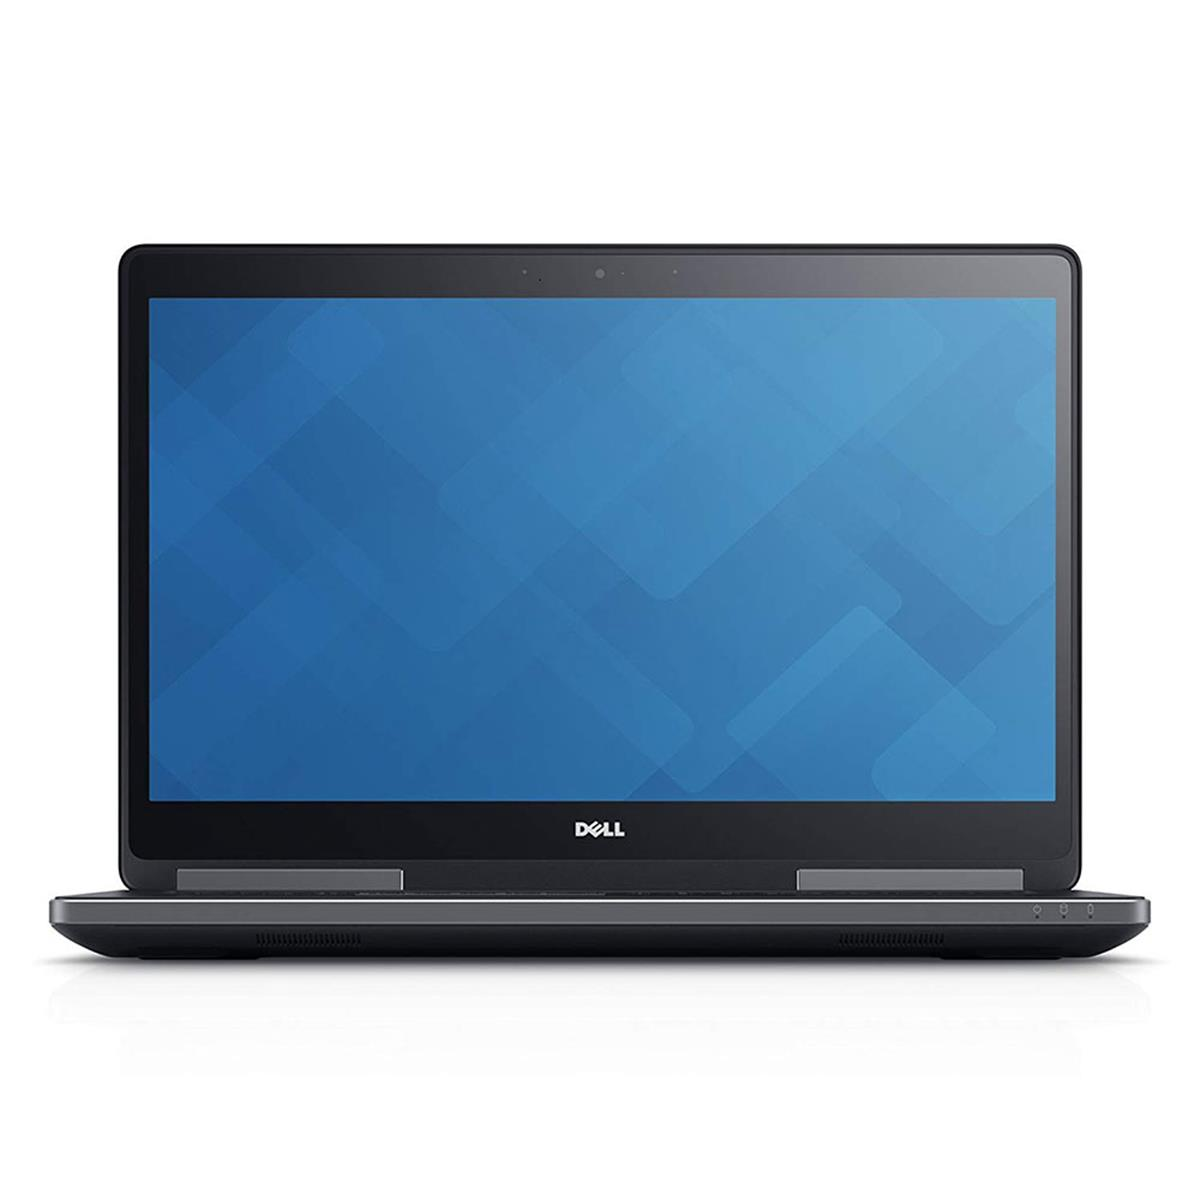 "Dell Precison 7720 XEON E3 1535M V6 3.1Ghz, Ram 16GB, SSD 1TB, Vga Quadro P4000 8GB, 17.3"" IPS FHD New Full Box"